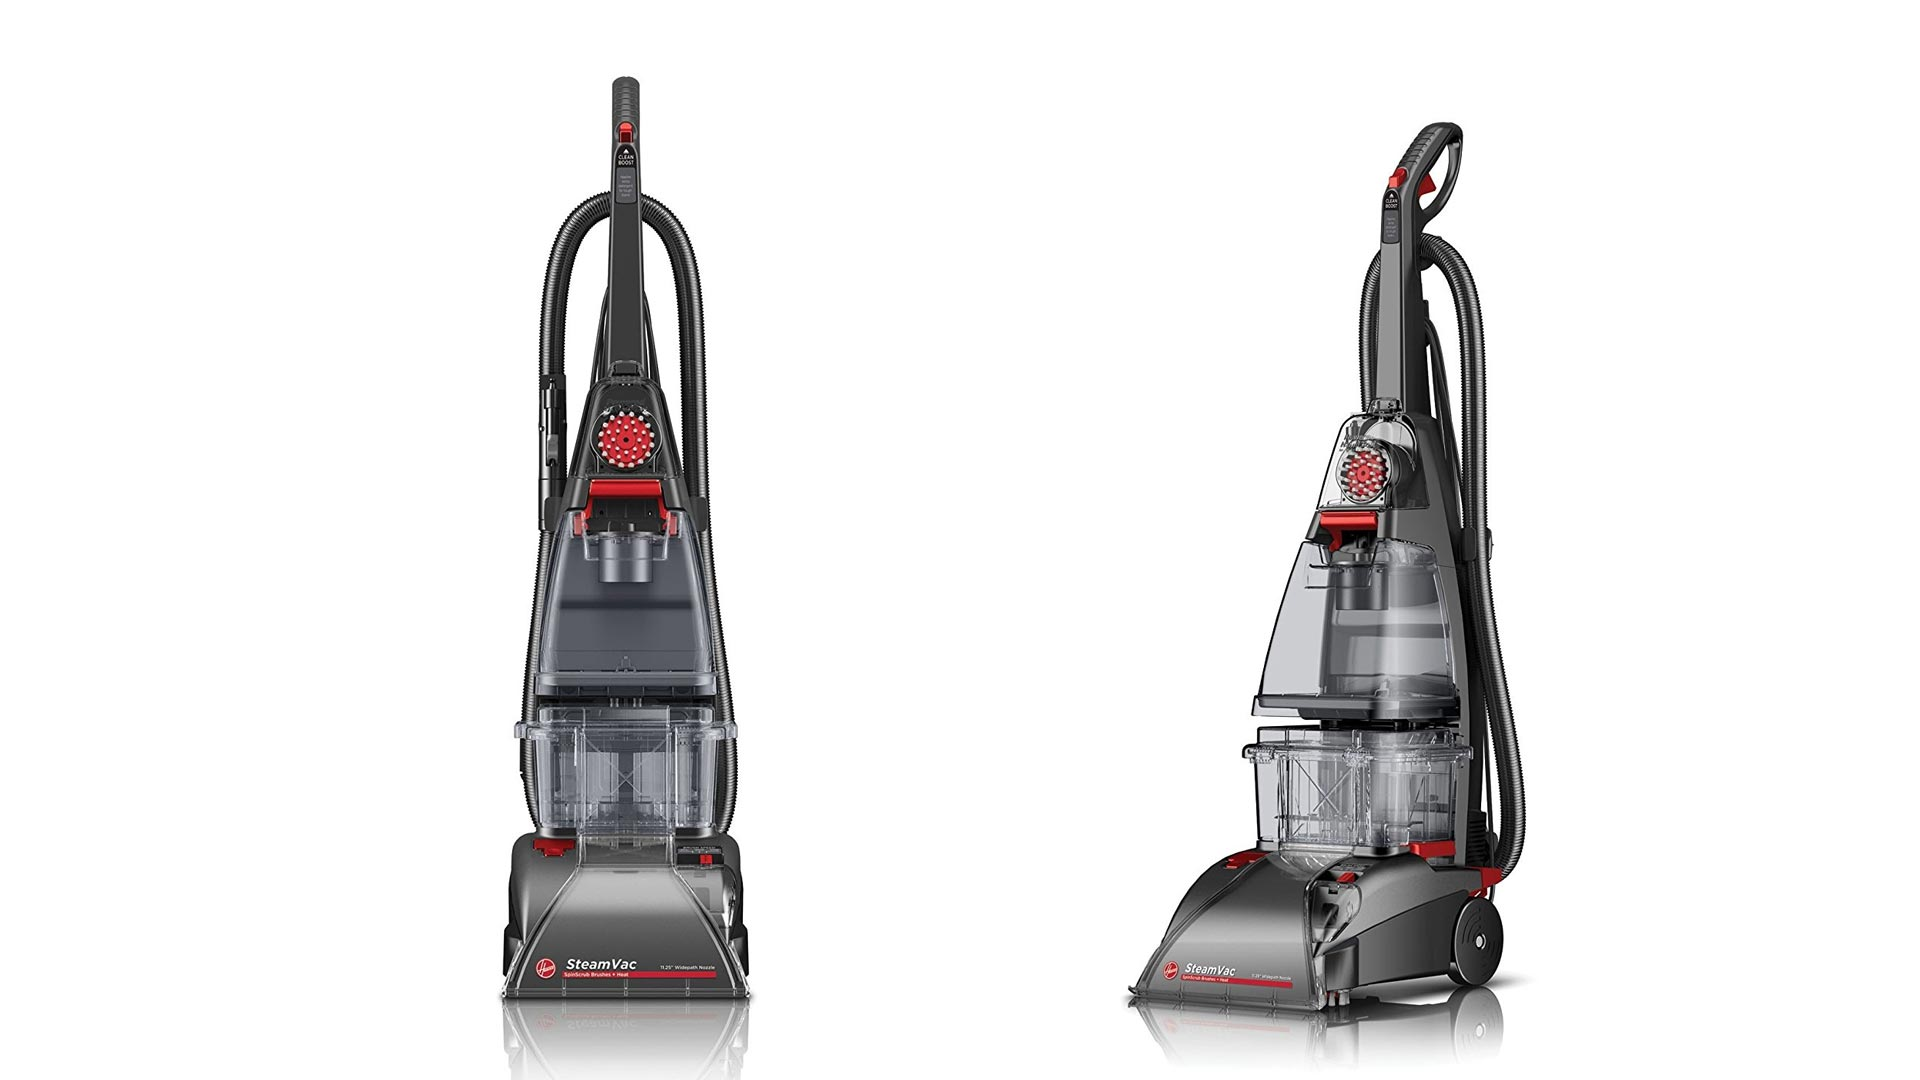 Hoover S Steamvac Plus Cleans Carpets More For 90